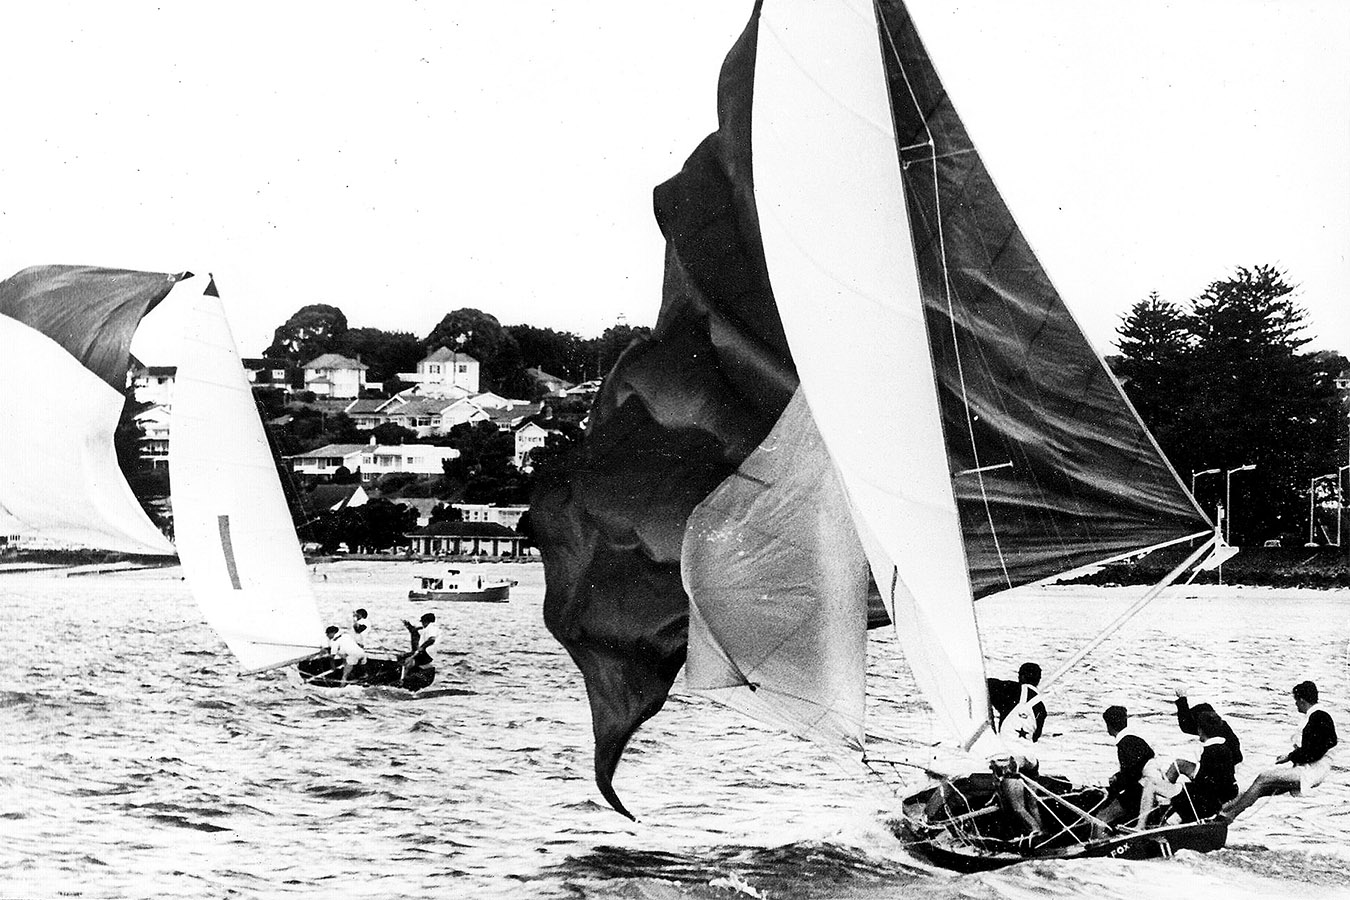 Schemer leads The Fox at the 1963 Giltinan Championship in Auckland